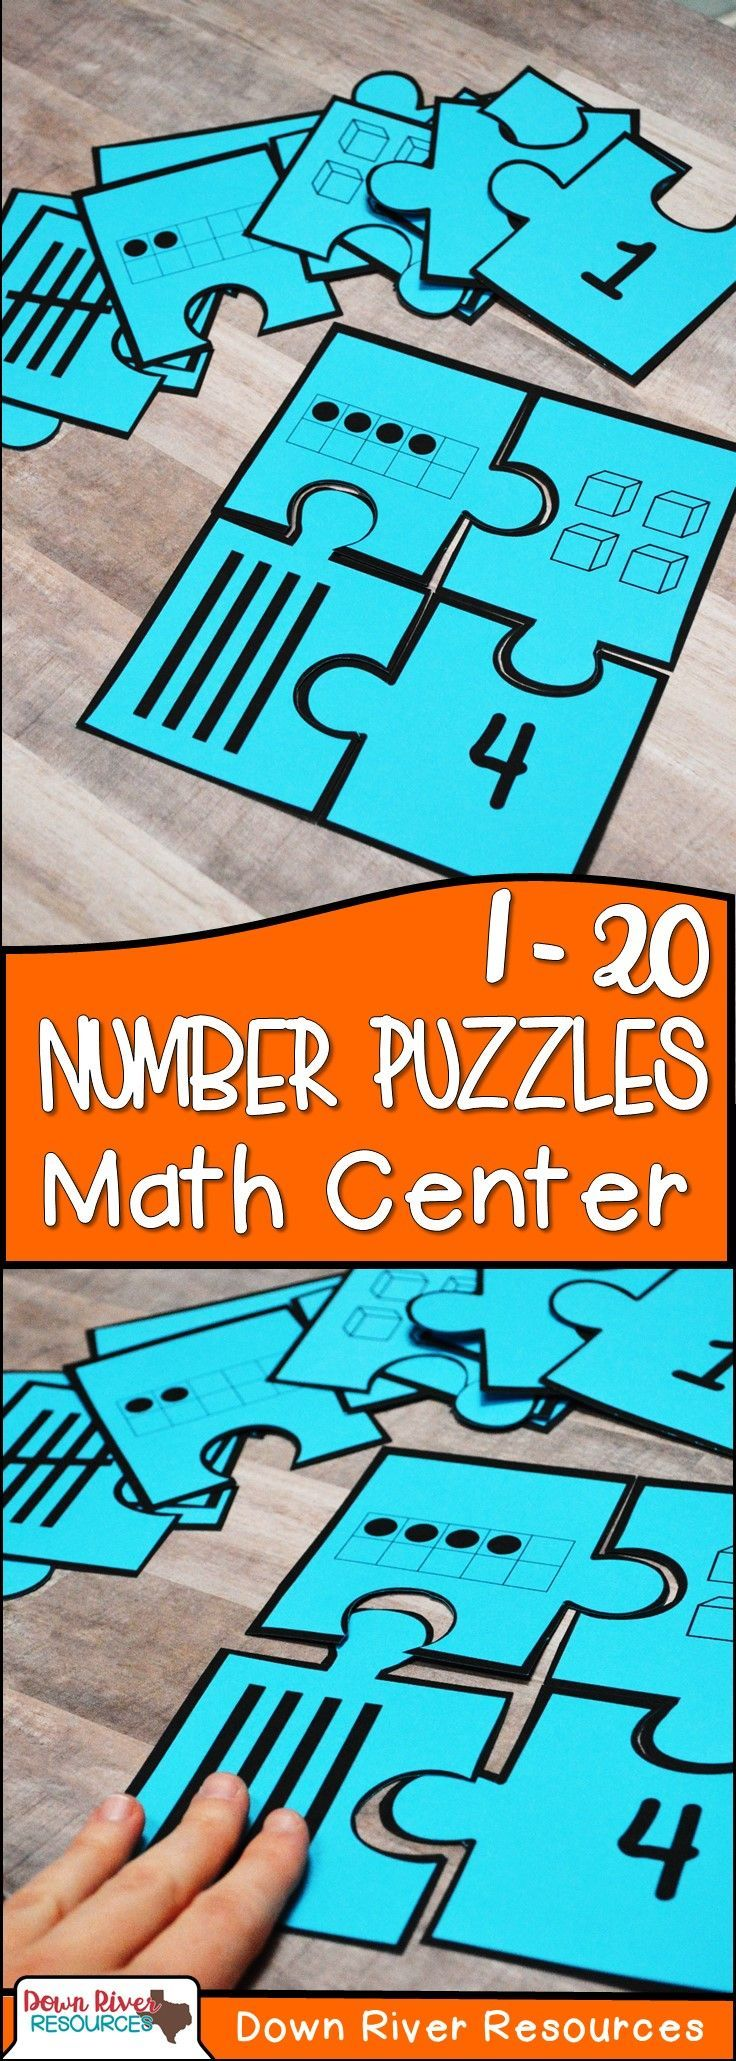 97 best Puzzles for Kids images on Pinterest | Activities, Brain ...